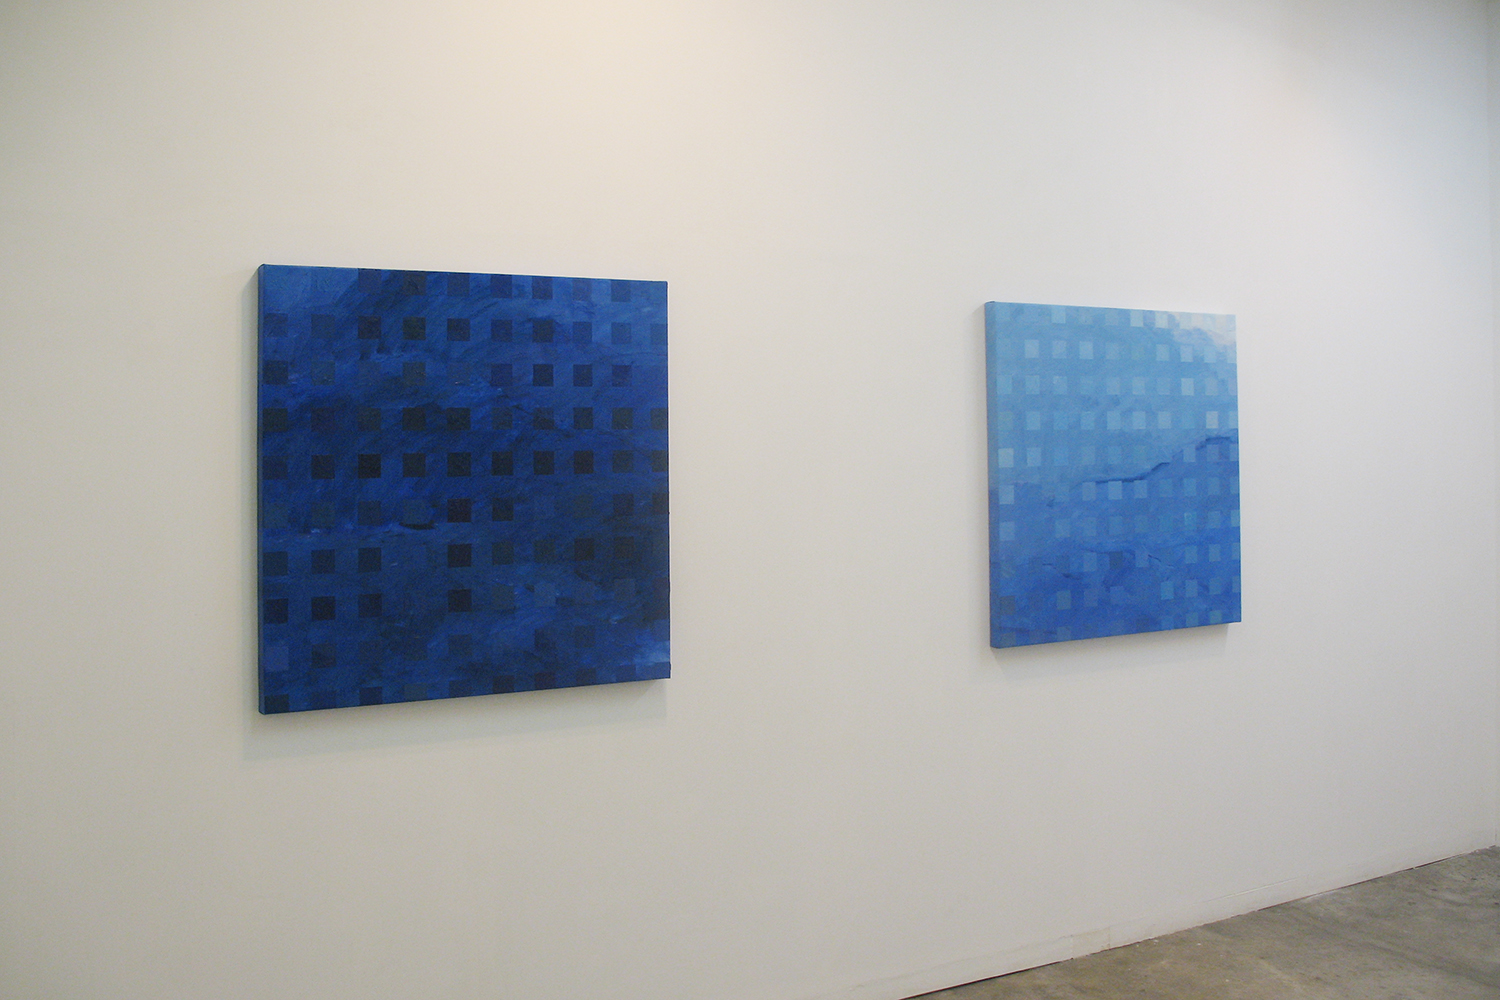 Installation view: Color-Work|oil on canvas|90 x 90 cm|2006 each